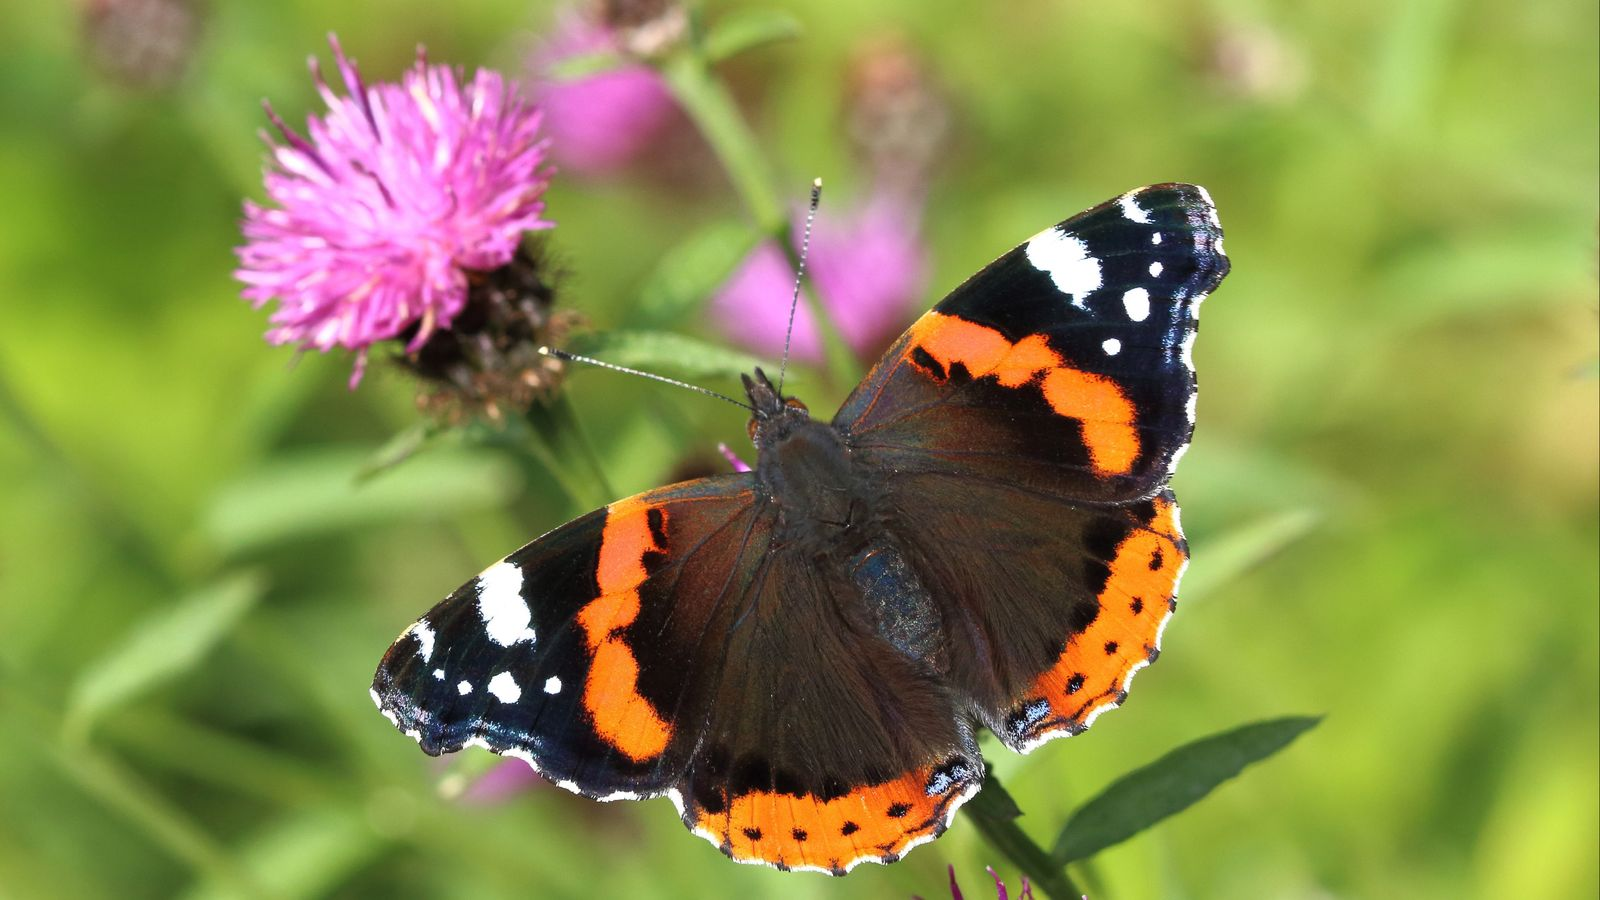 Climate change crisis: Britons urged to count butterflies amid fears cold and wet spring has hit UK numbers